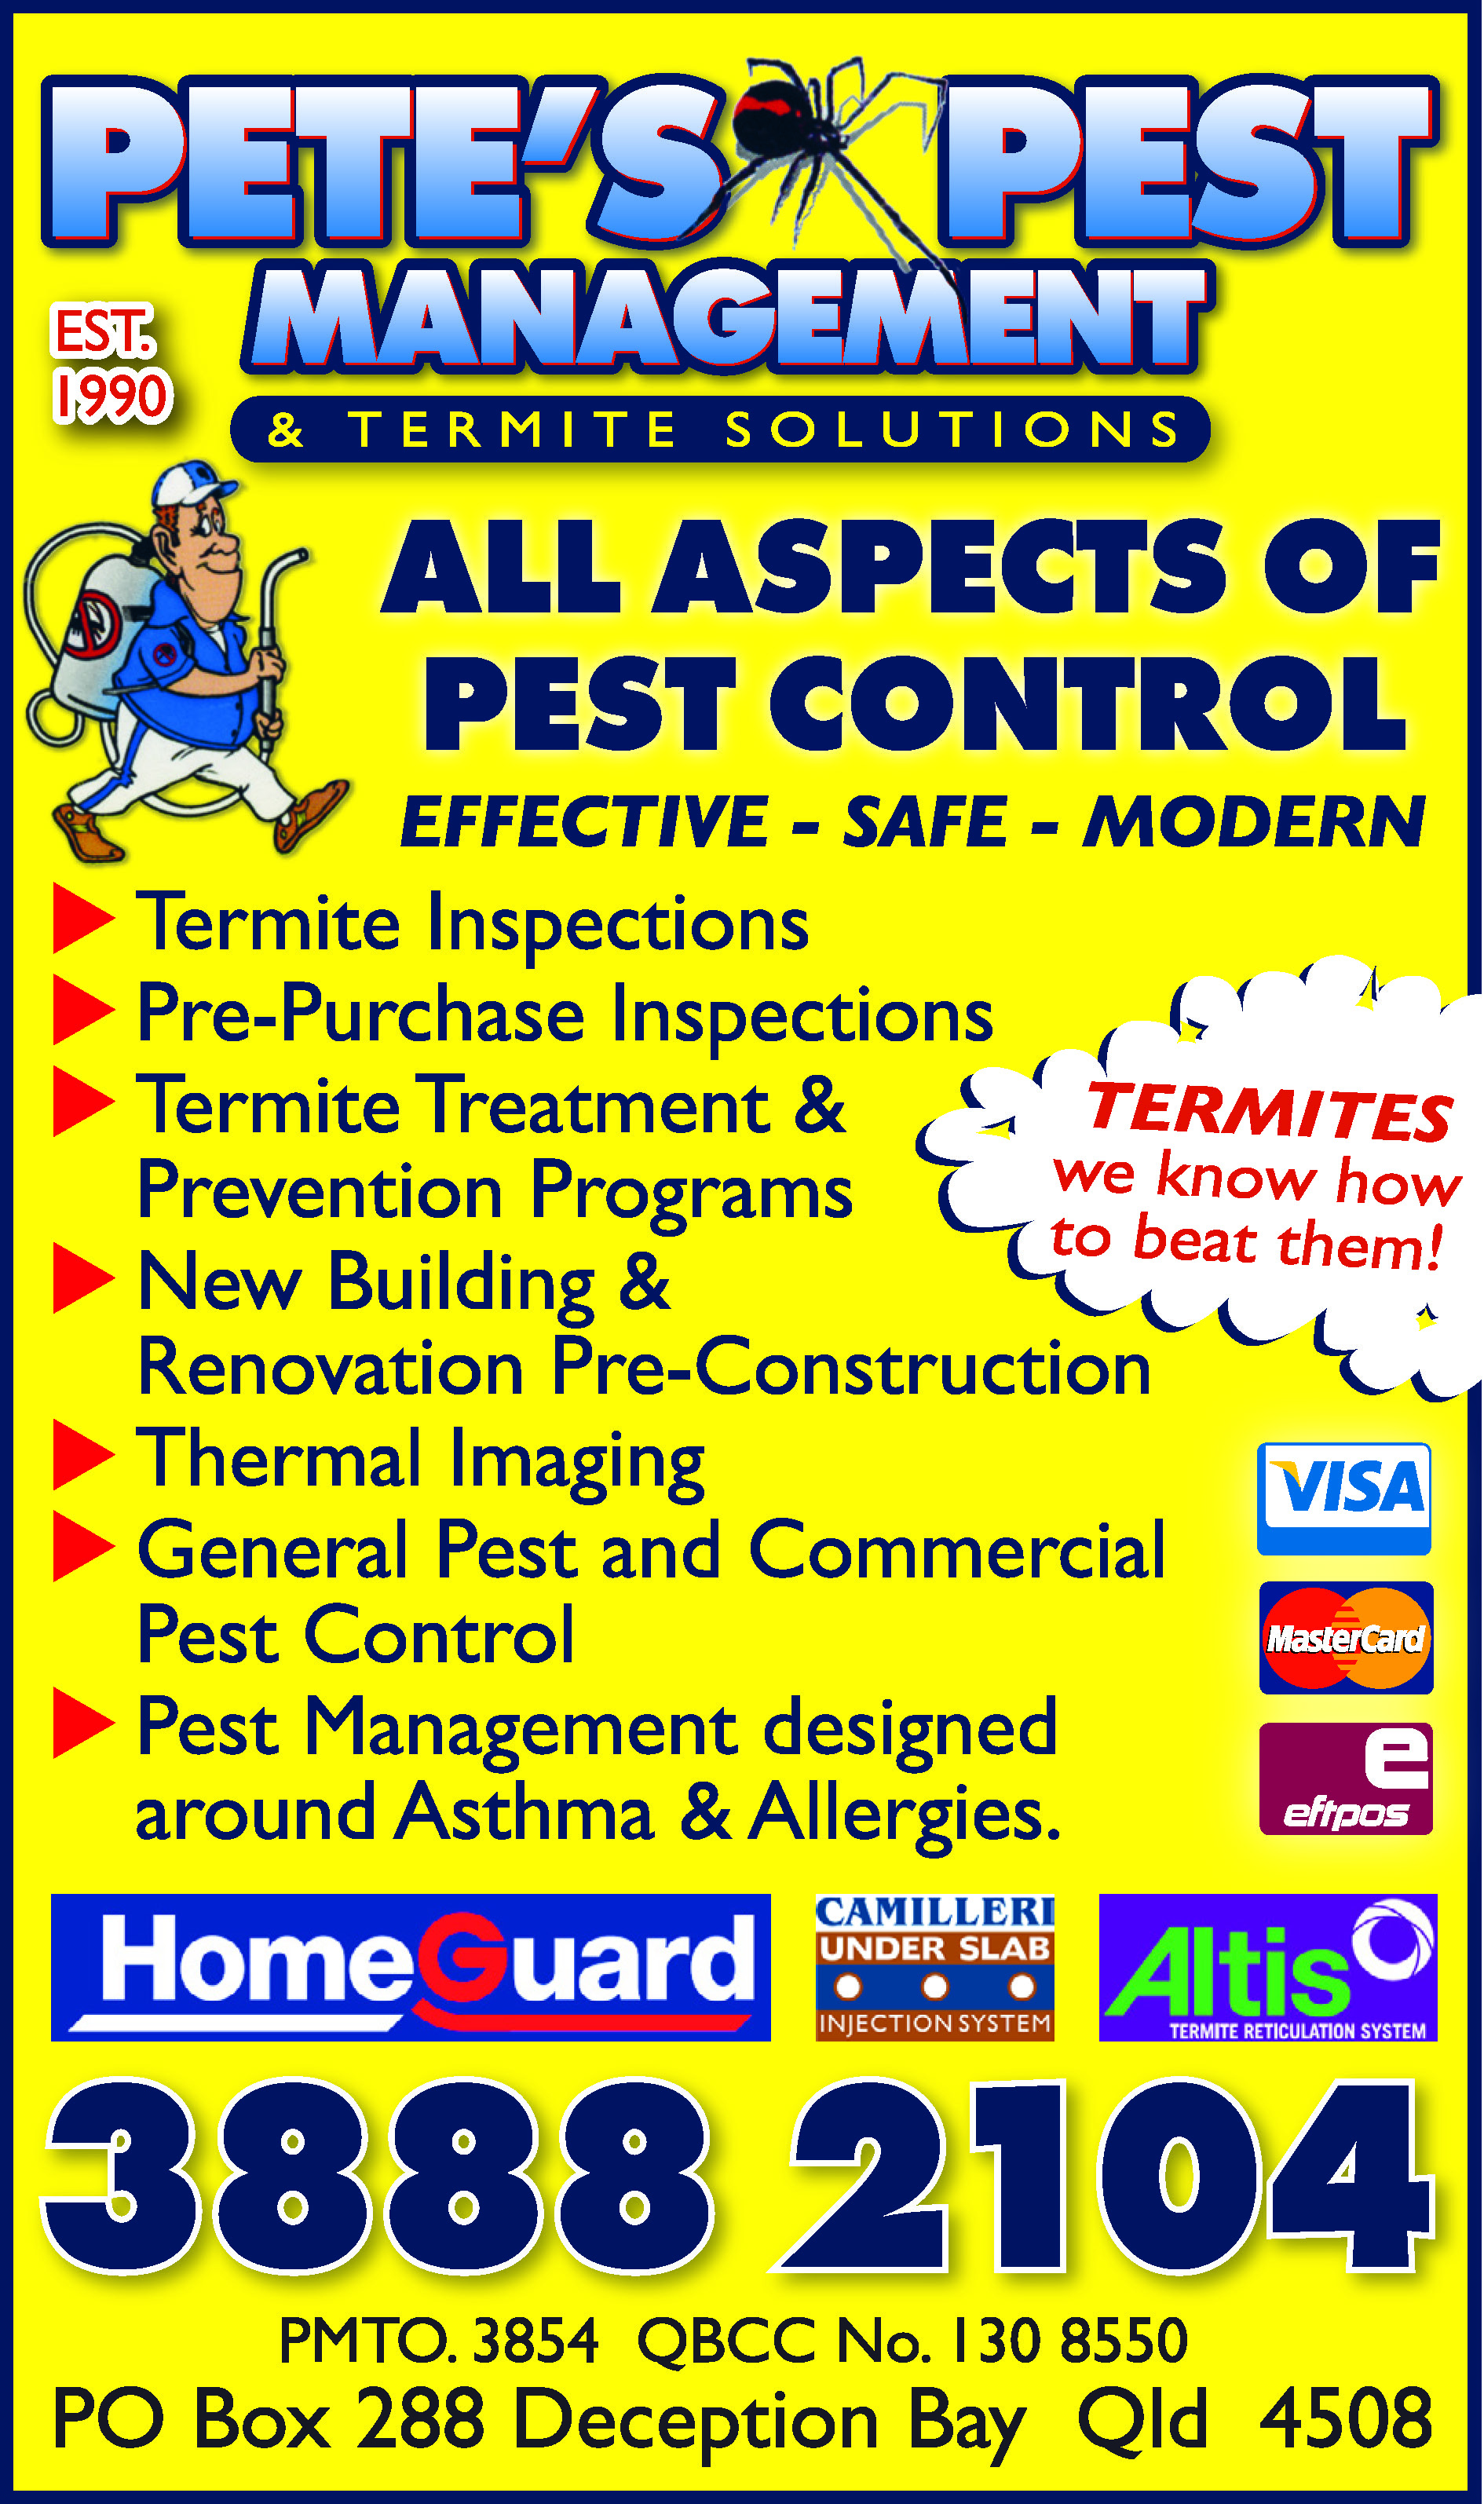 Pete's Pest Management & Termite Solutions - Pest Control